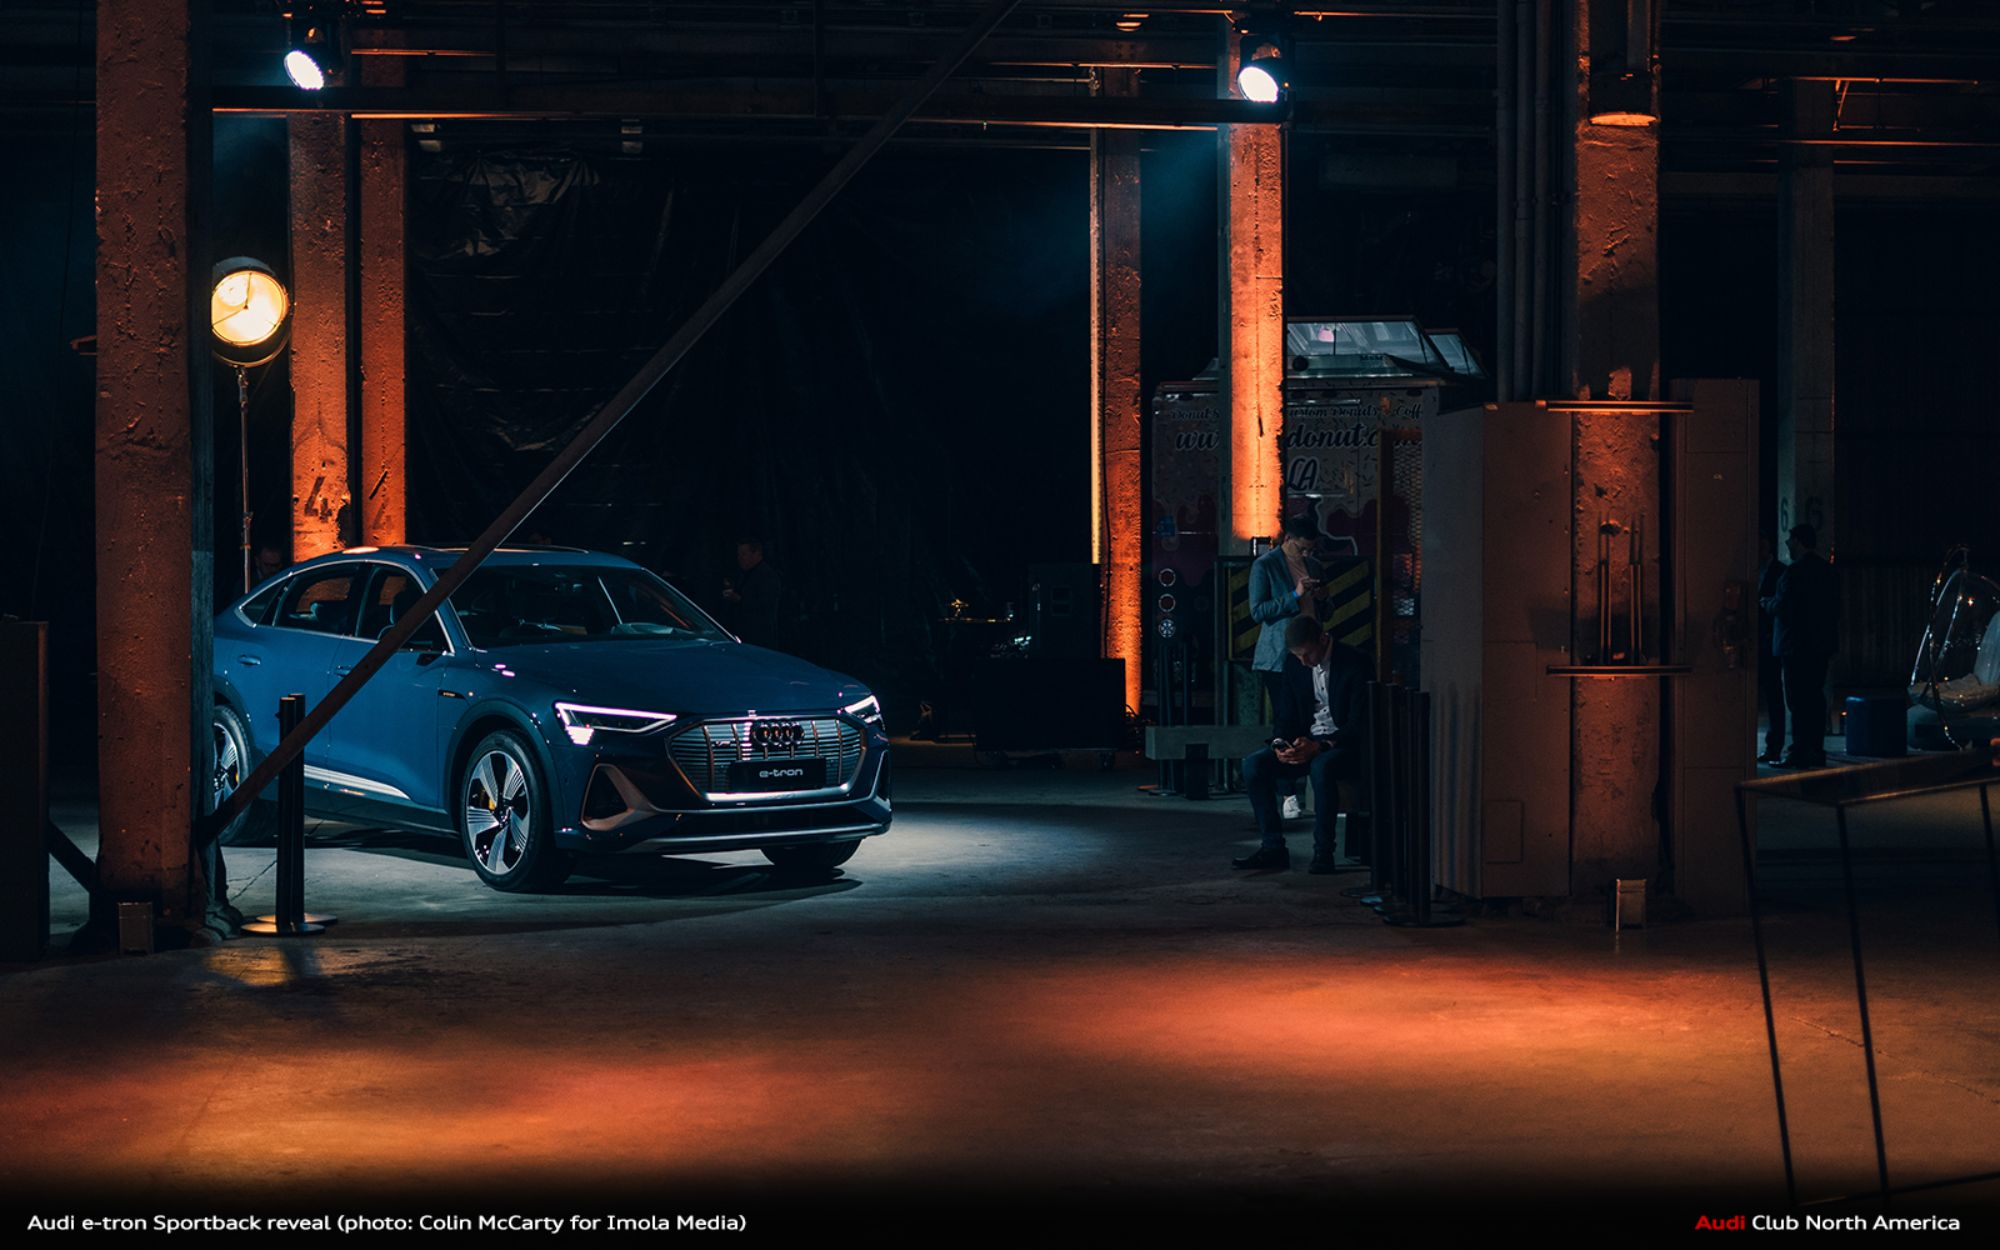 Photo Gallery: An Evening With Audi And The e-tron Sportback